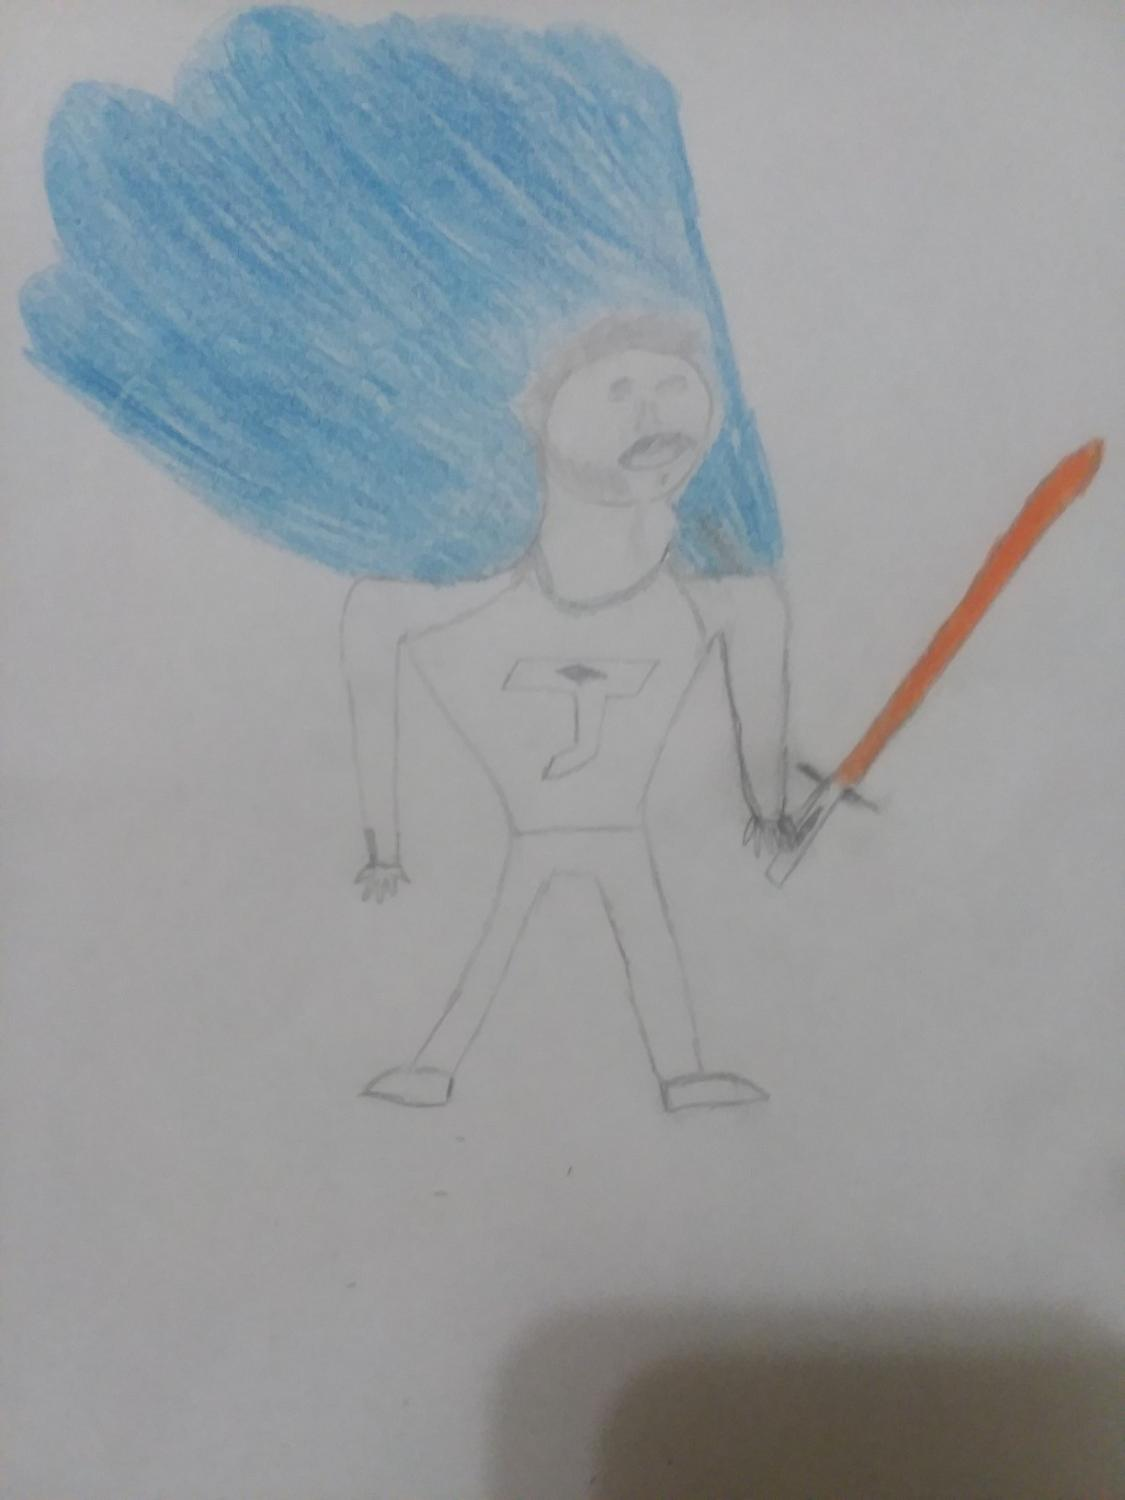 pencil drawing of a male superhero with a blue cape and red light saber sword